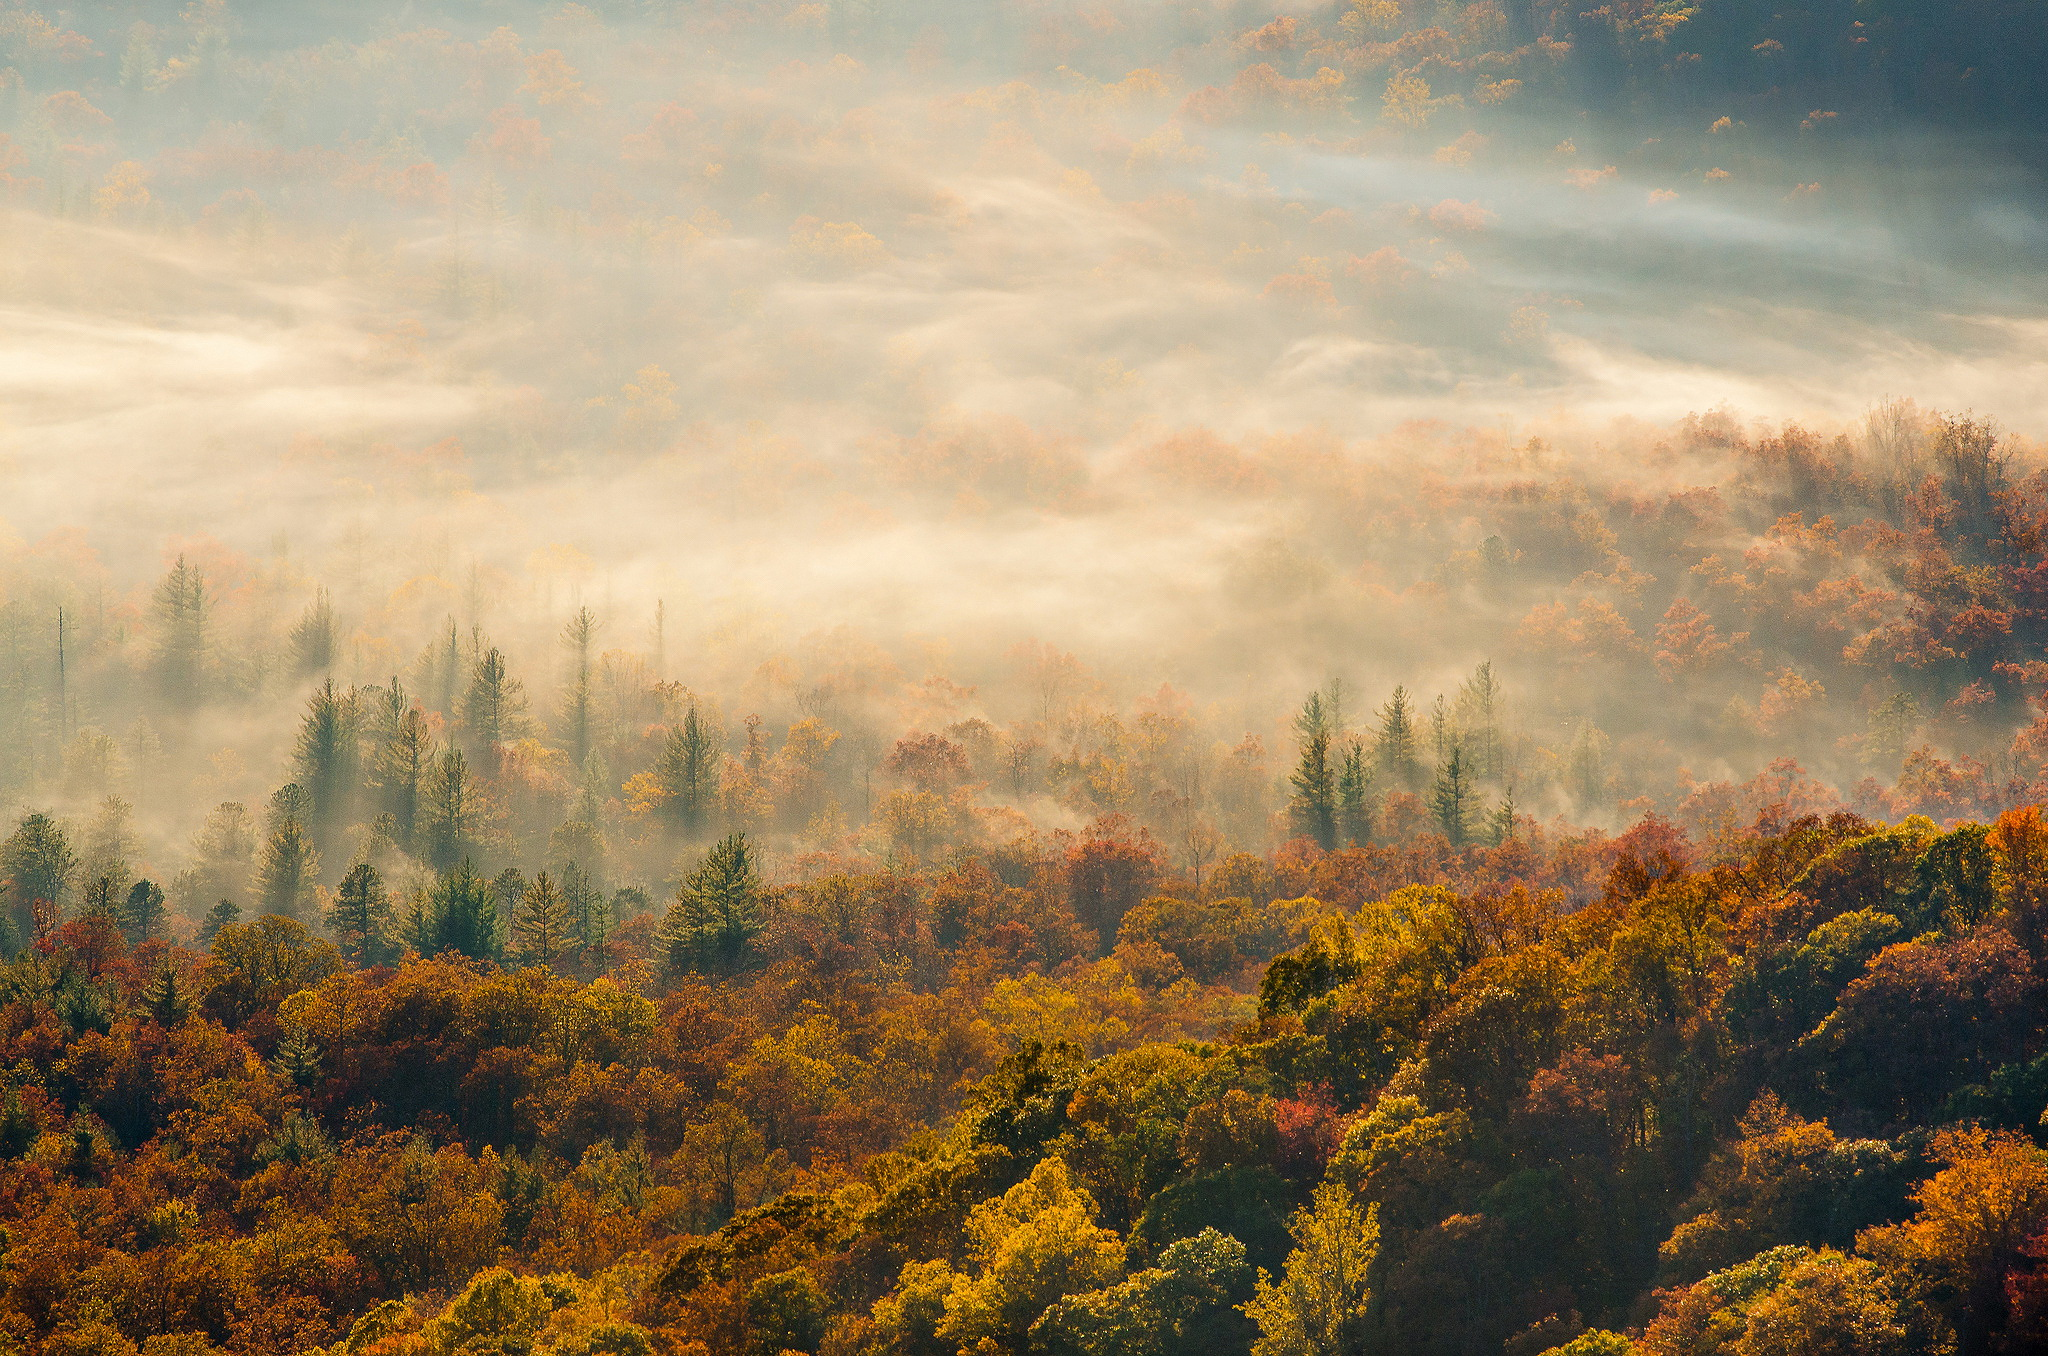 Autumn-mountain-fog.jpg